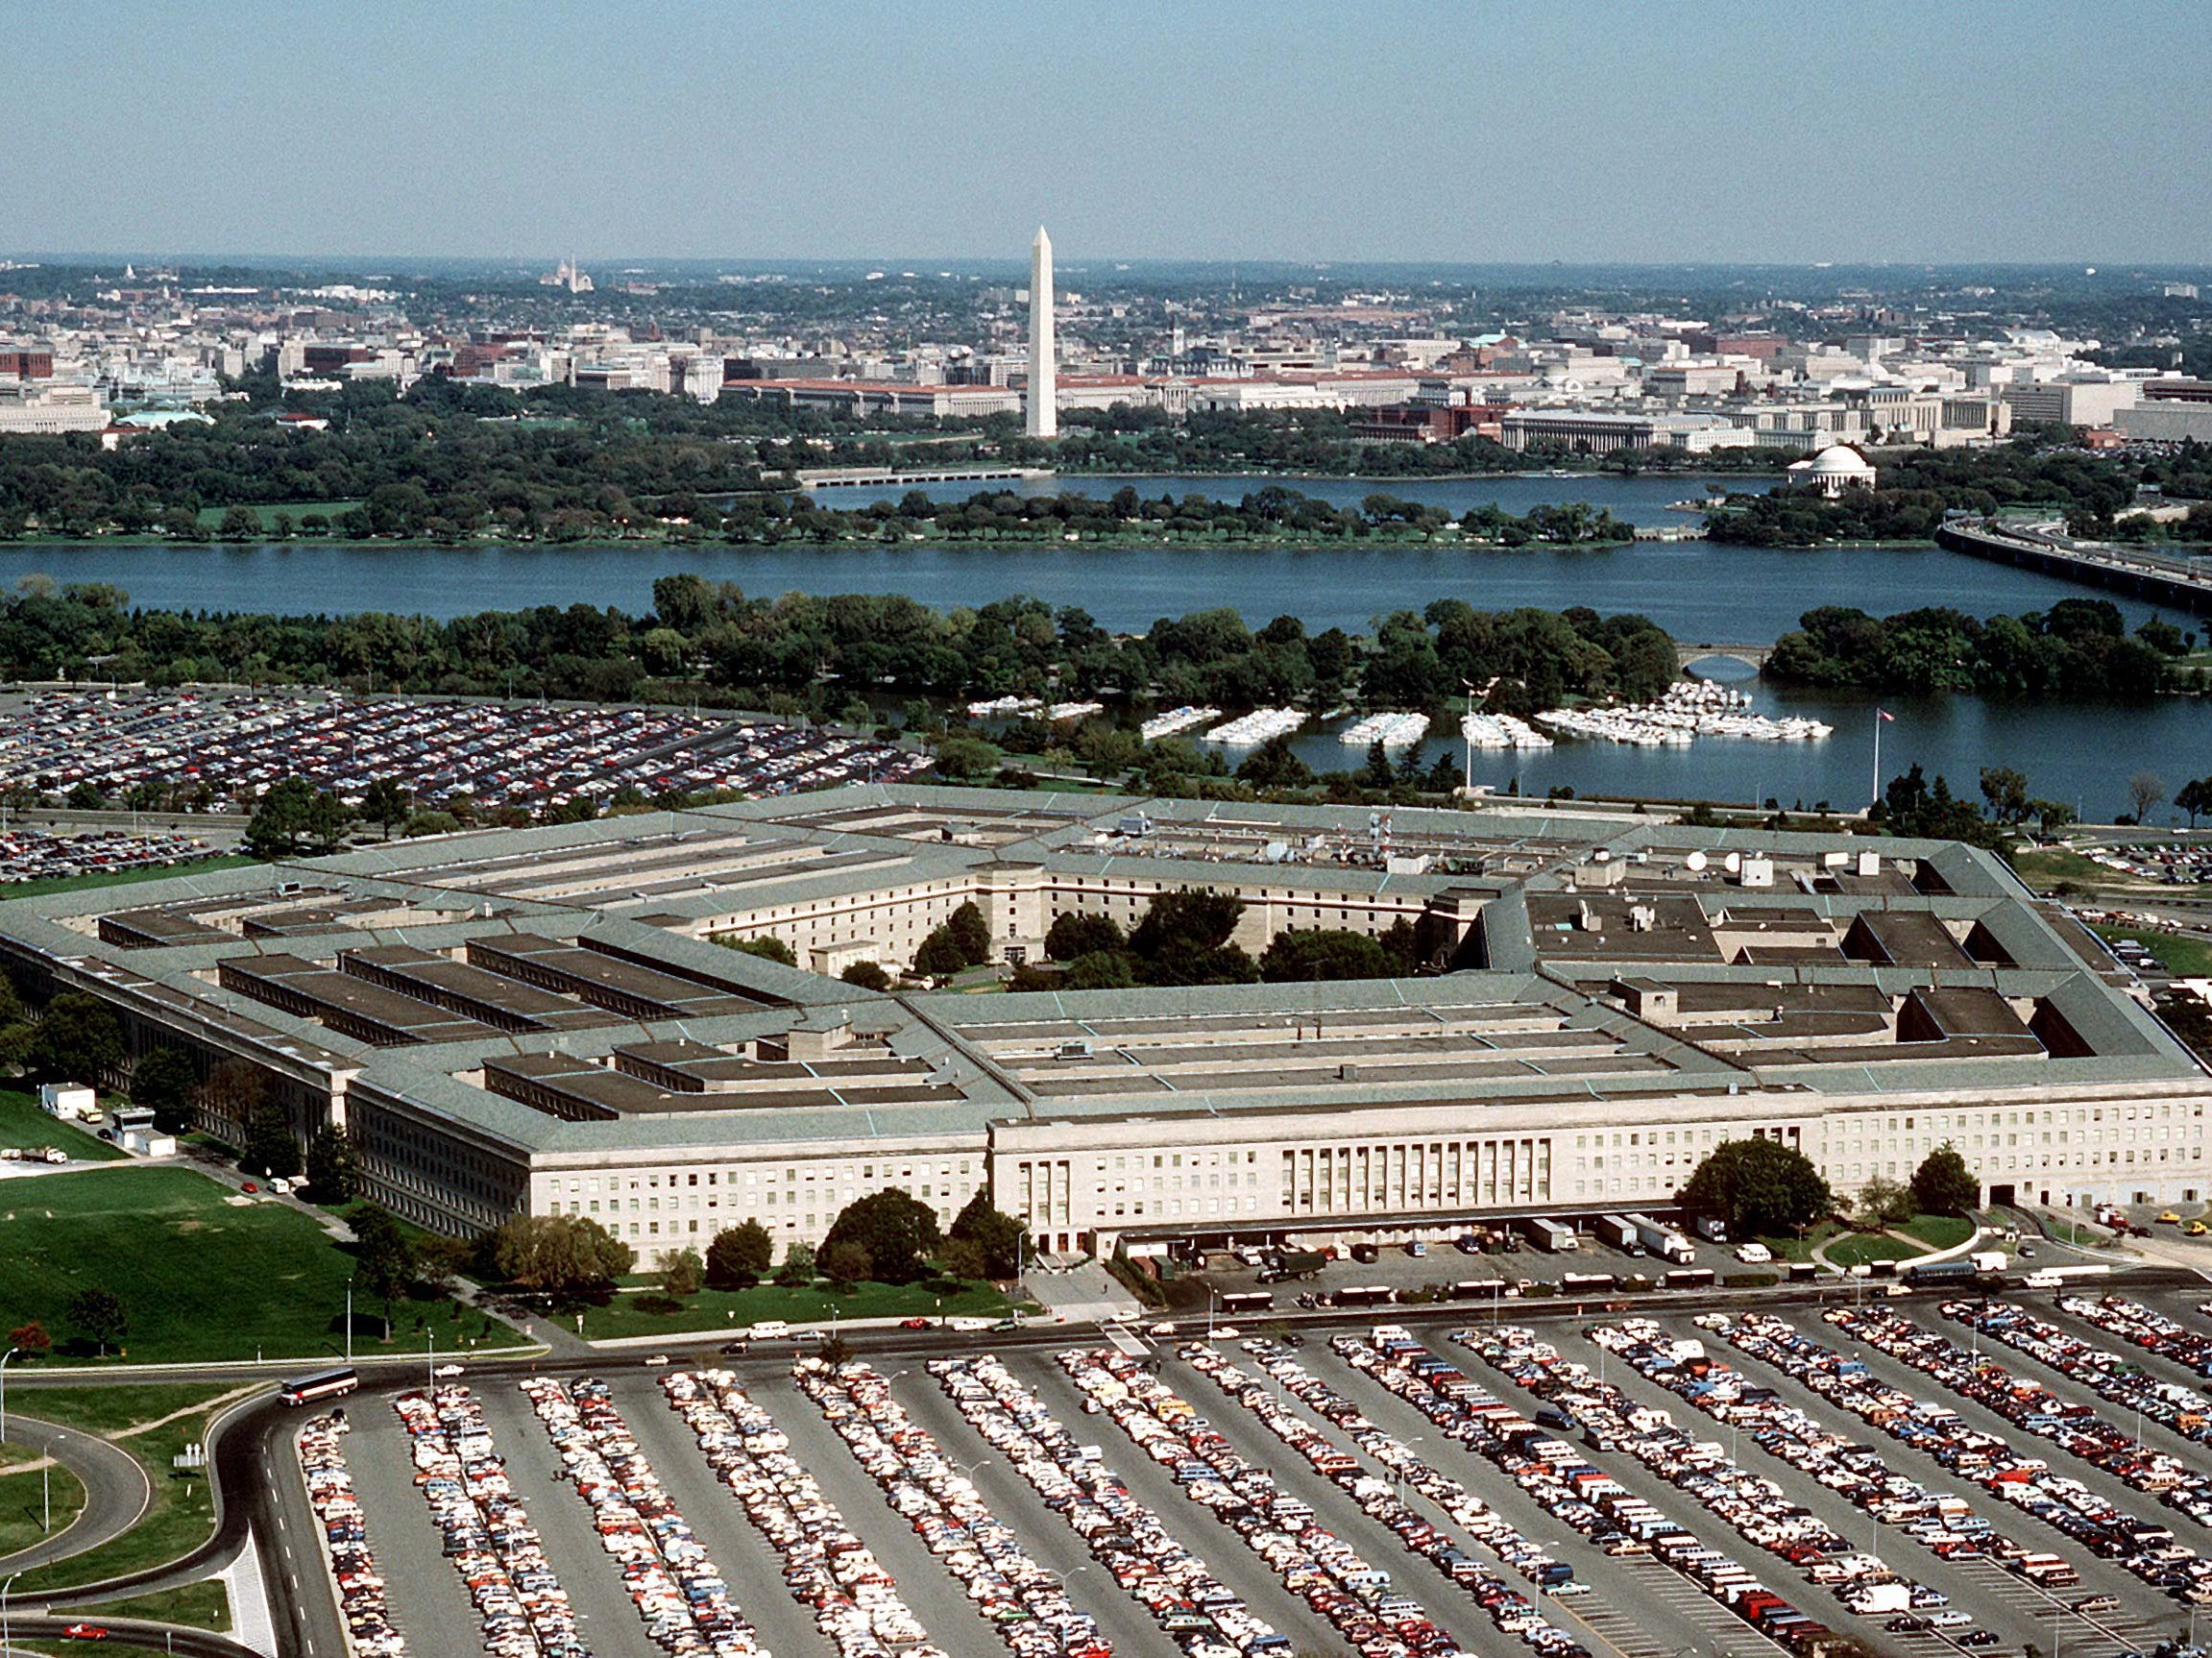 The Pentagon, looking northeast with the Potomac River and Washington Monument in the distance. The Tidal Basin is seen just below the Washington Monument. The marina which is visible is in Pentagon Lagoon, which is part of the Boundary Channel of the Potomac River. Trees border the Boundary Channel and exist both on the Virginia shoreline and on Columbia Island (an island in the Potomac River).